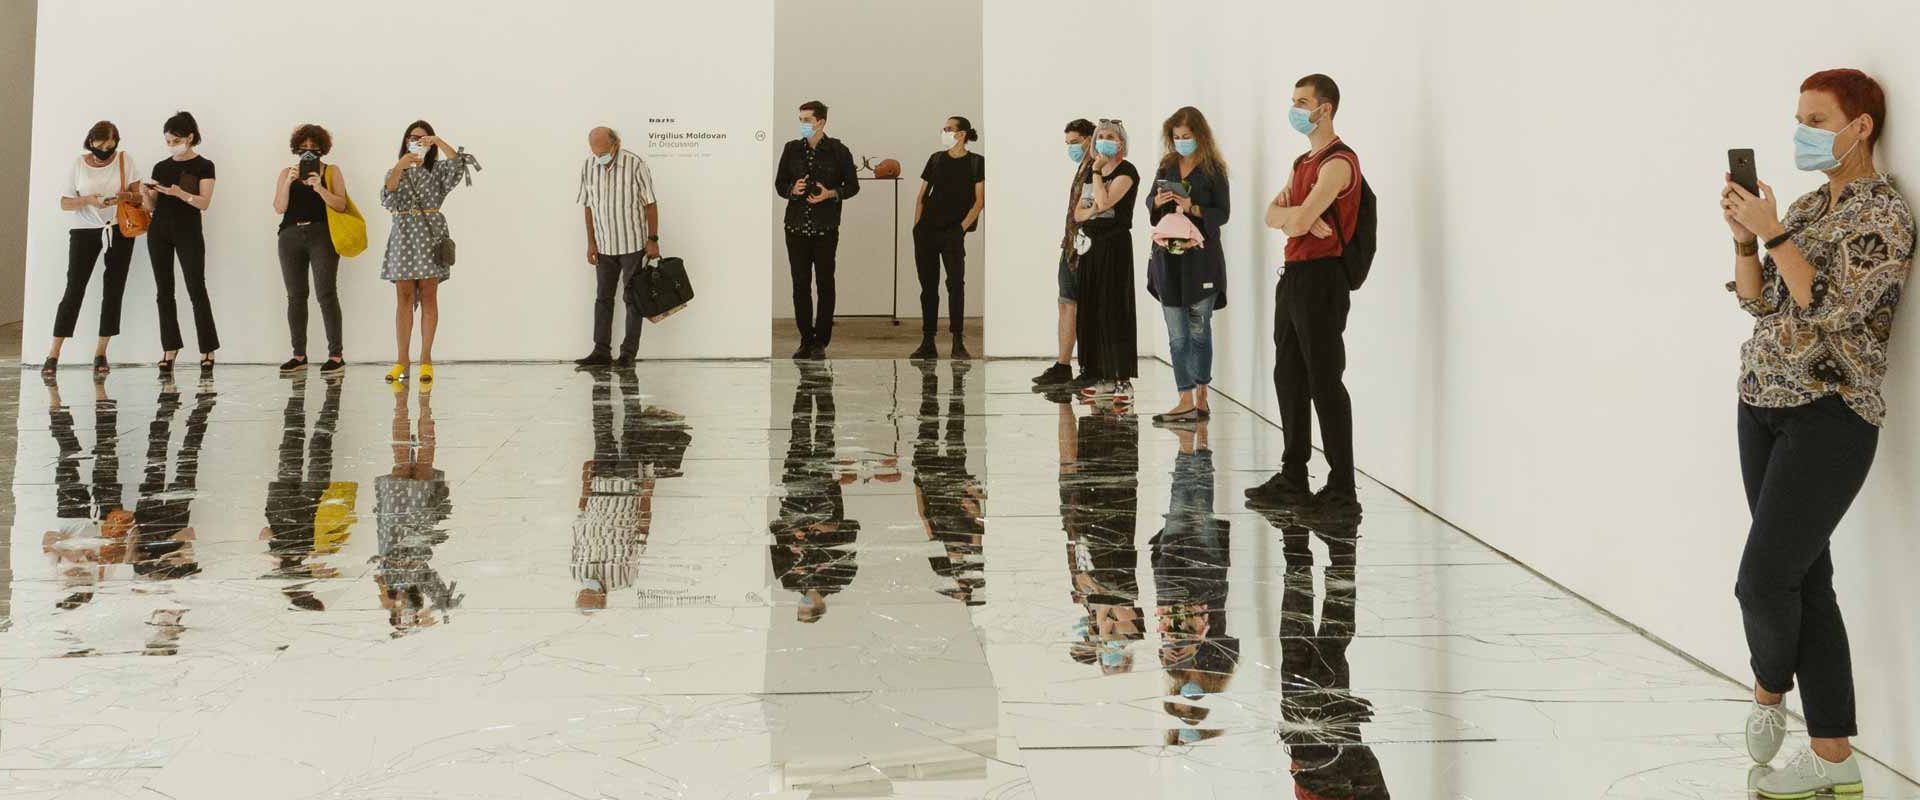 Reflections in art